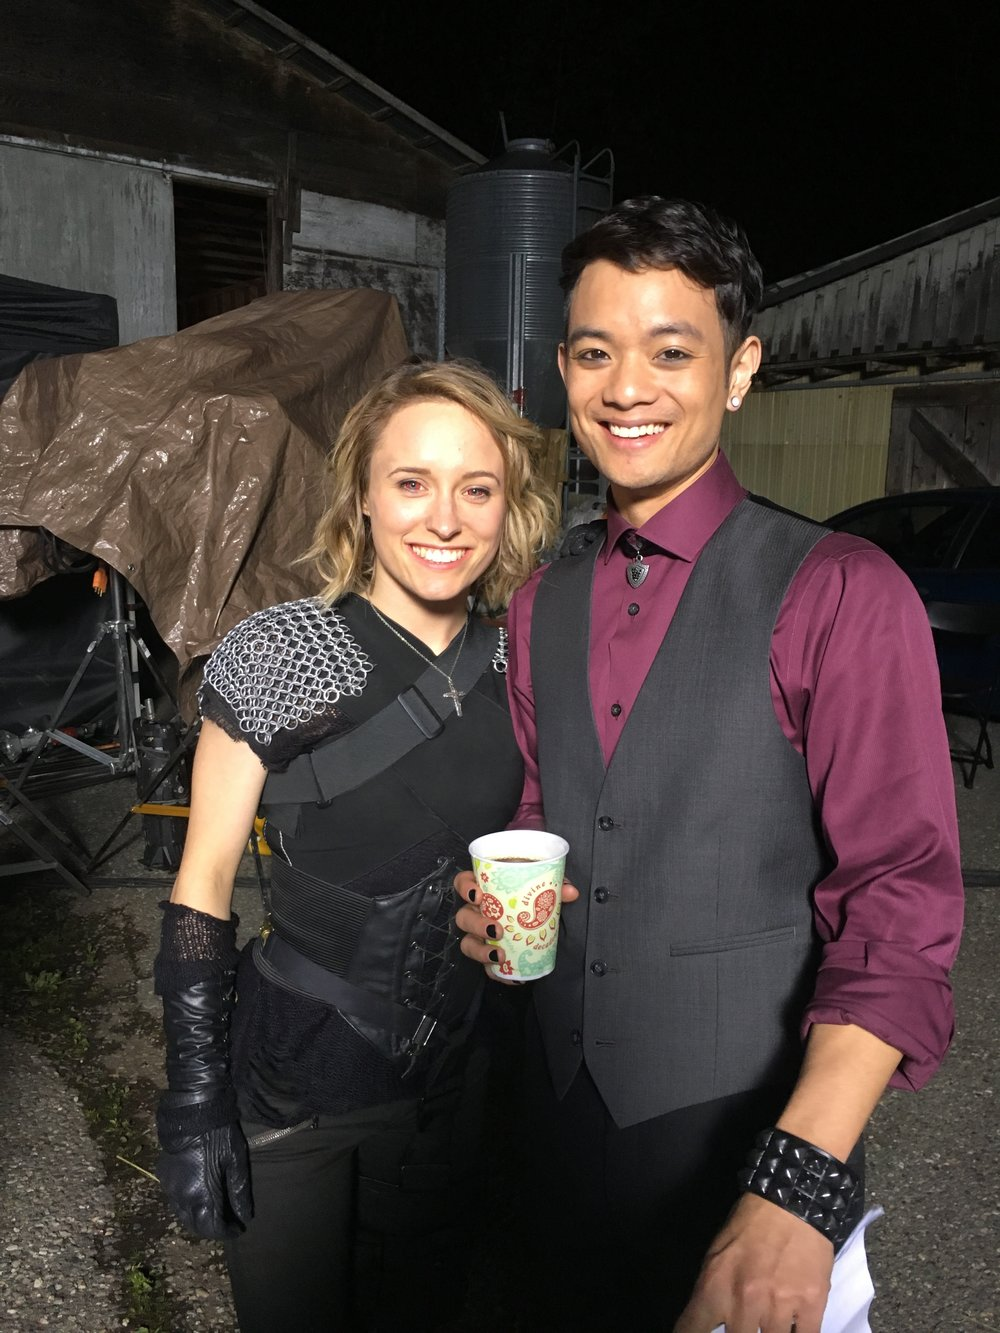 Demonx cassandra and osric chau.JPG